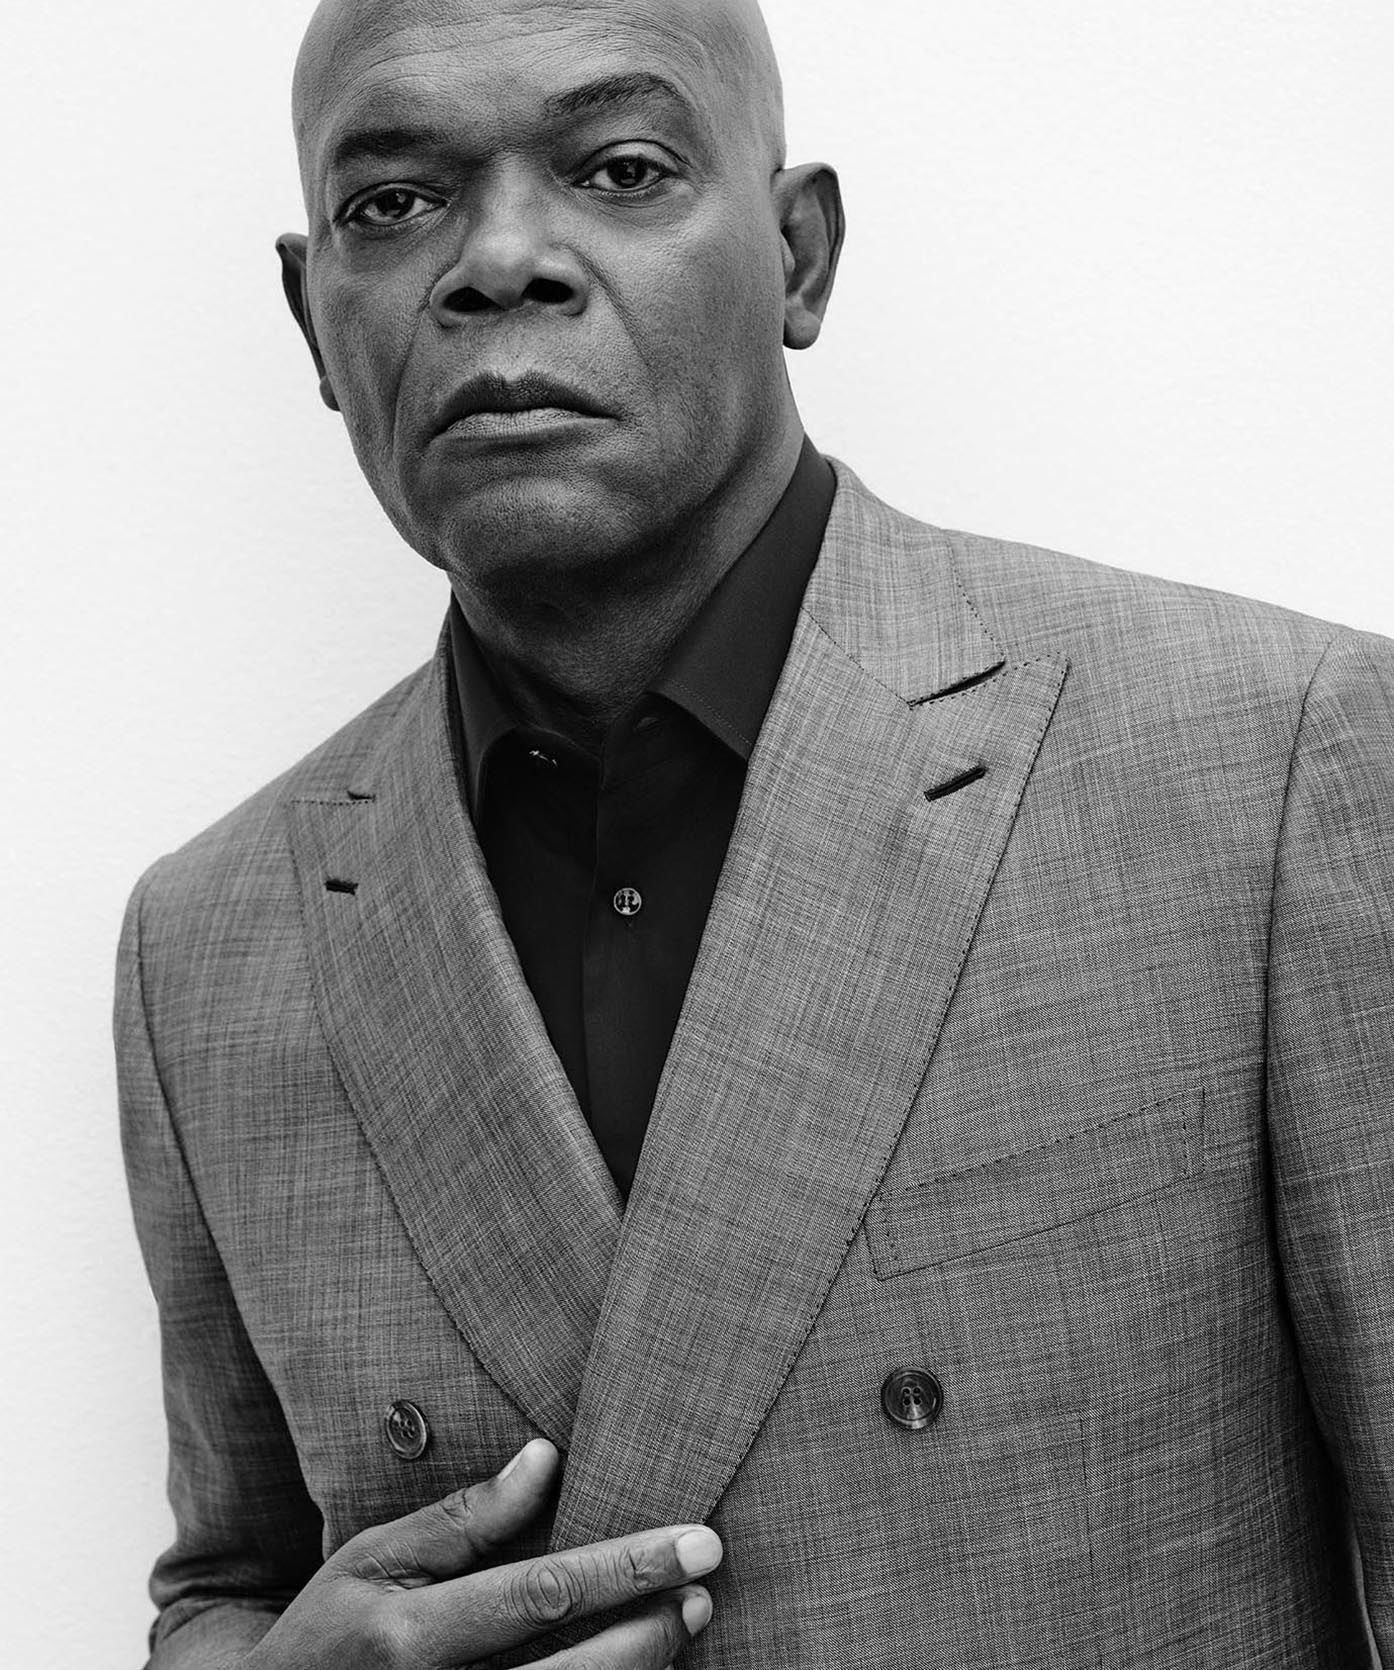 Brioni-advertising-Samuel-L-Jackson-double-breasted-suit